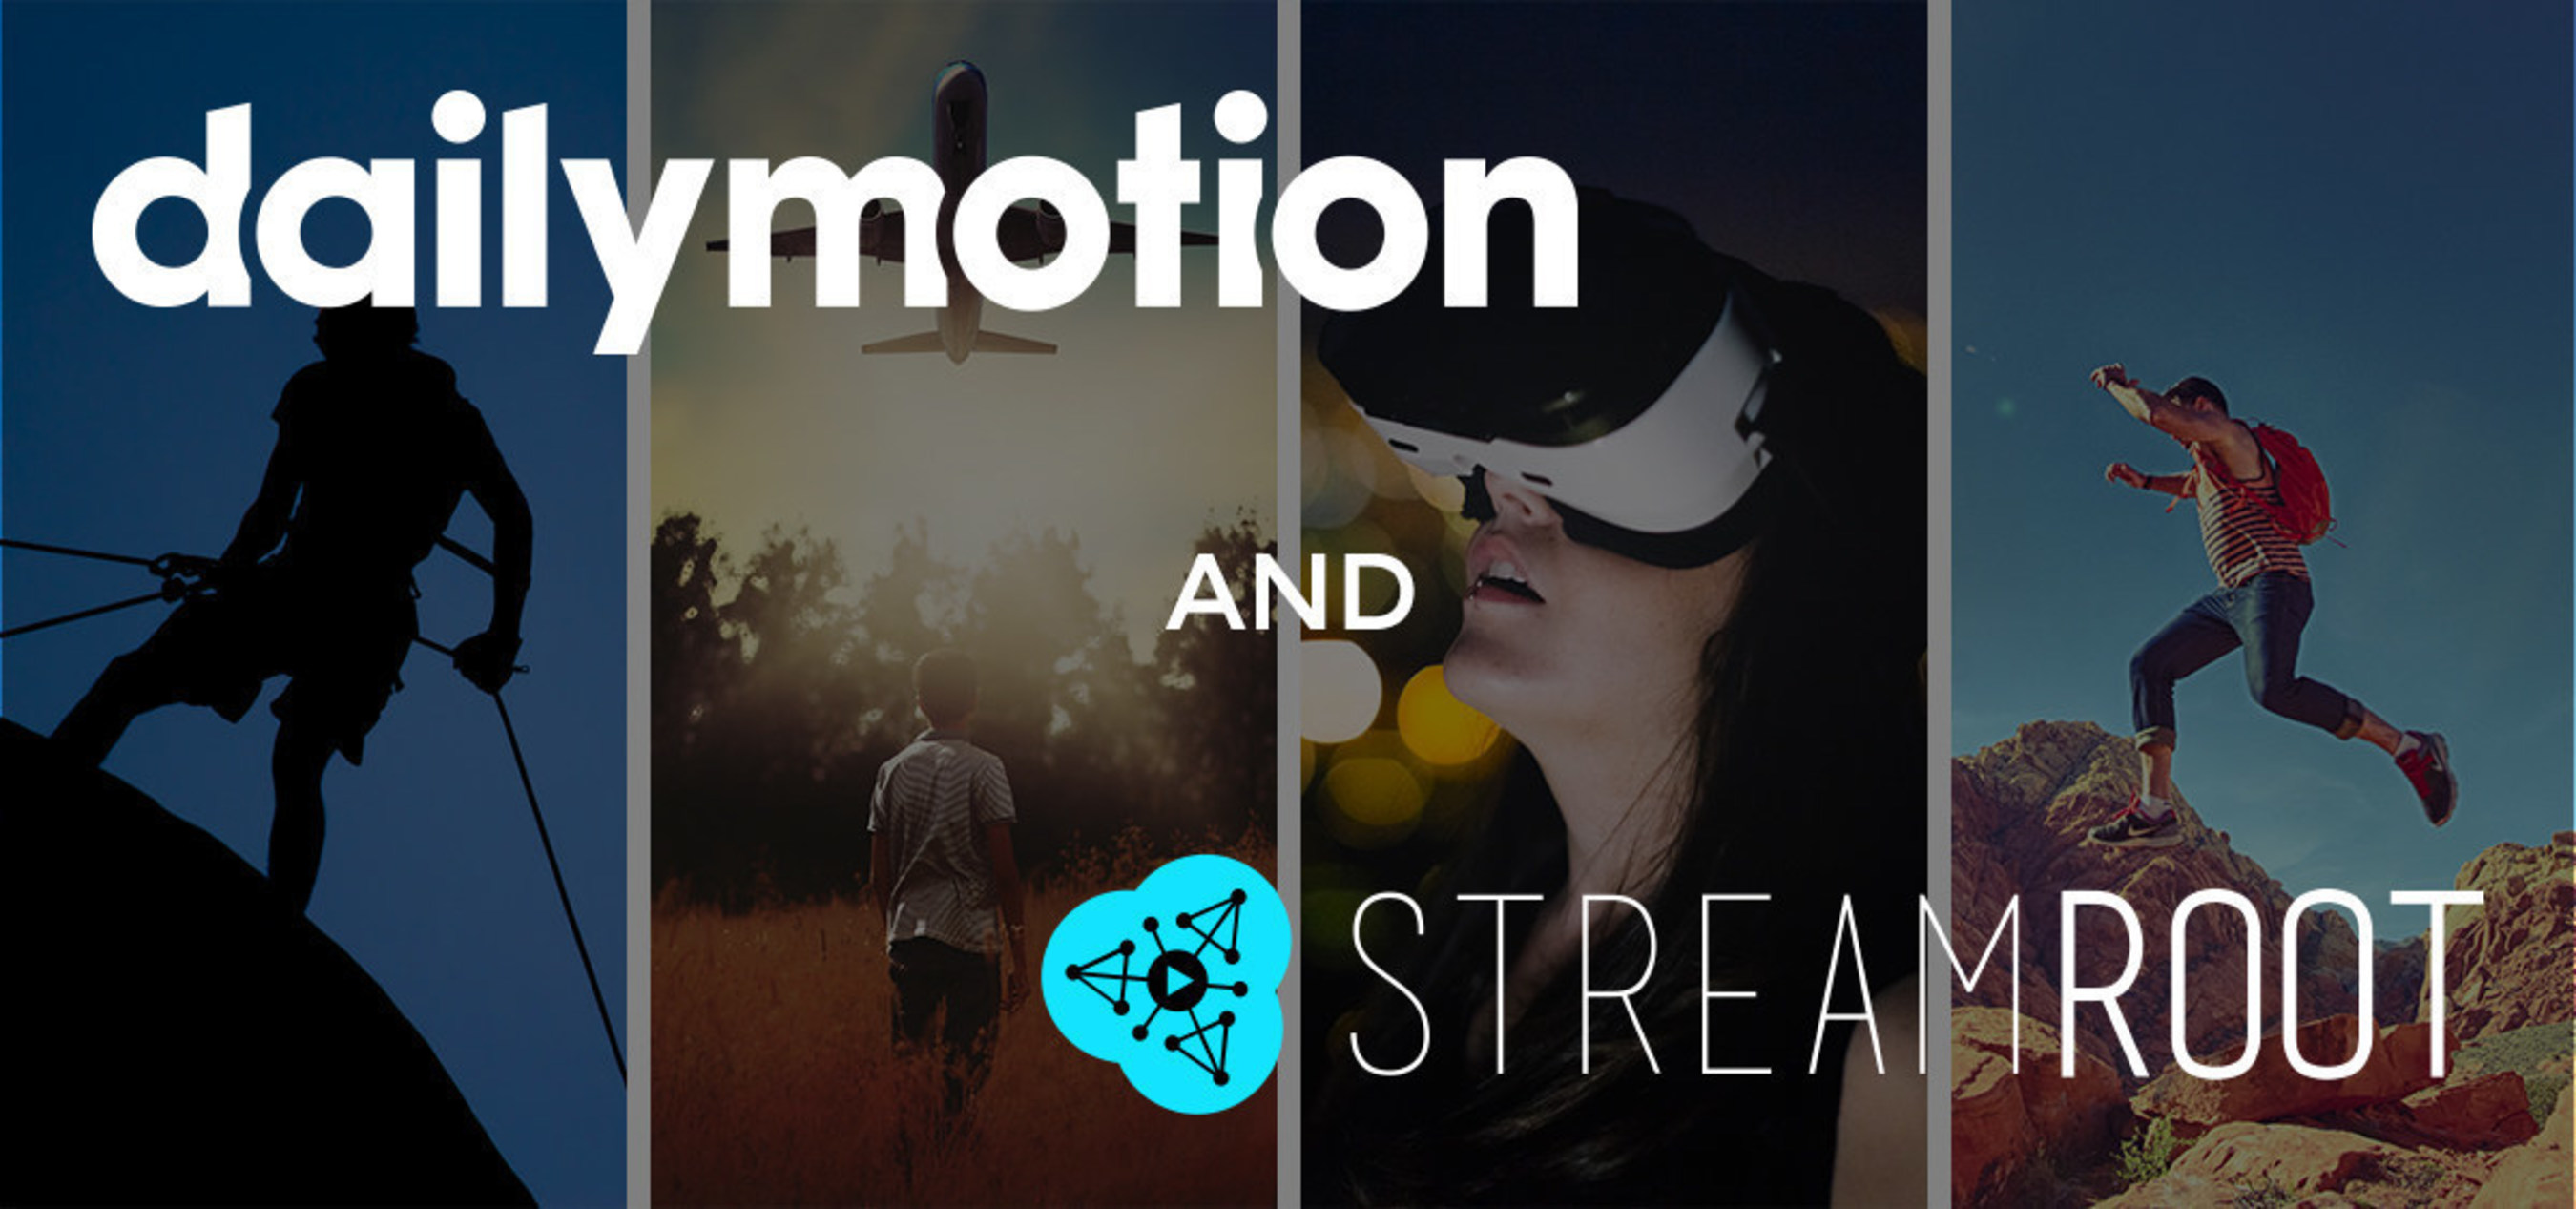 Dailymotion selects Streamroot to control cost and QoS for large scale OTT video delivery